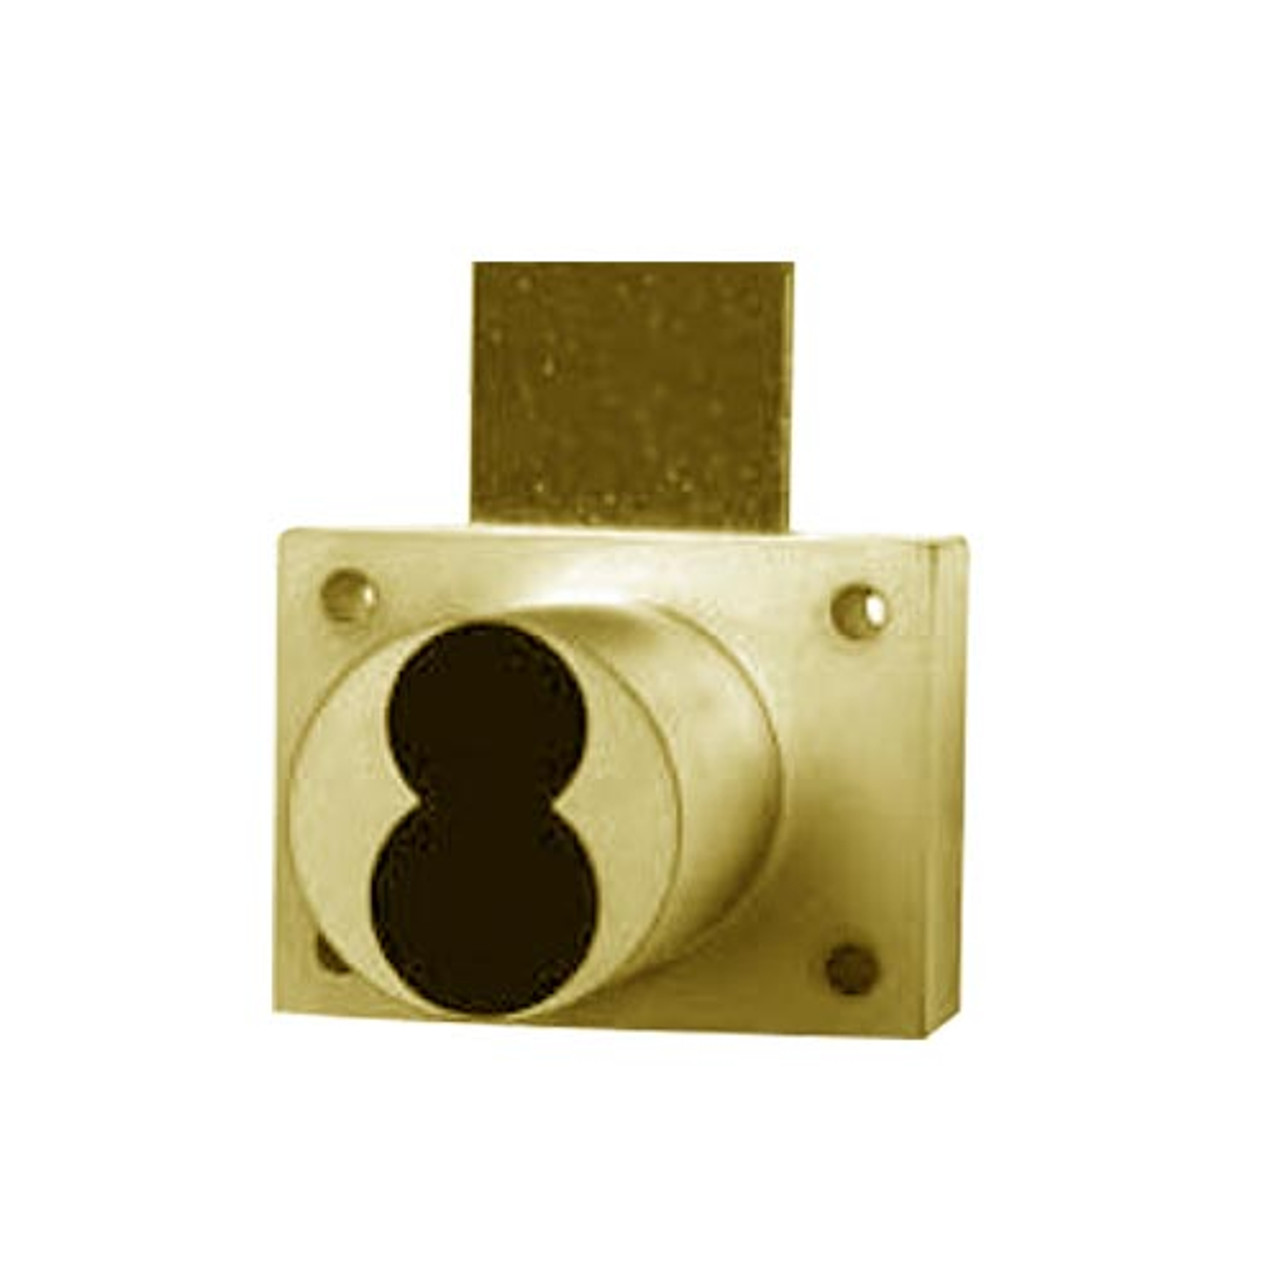 Olympus 888ICP-US3 Cabinet Drawer Deadbolt Lock for Schlage Full-Size IC Core in Bright Brass